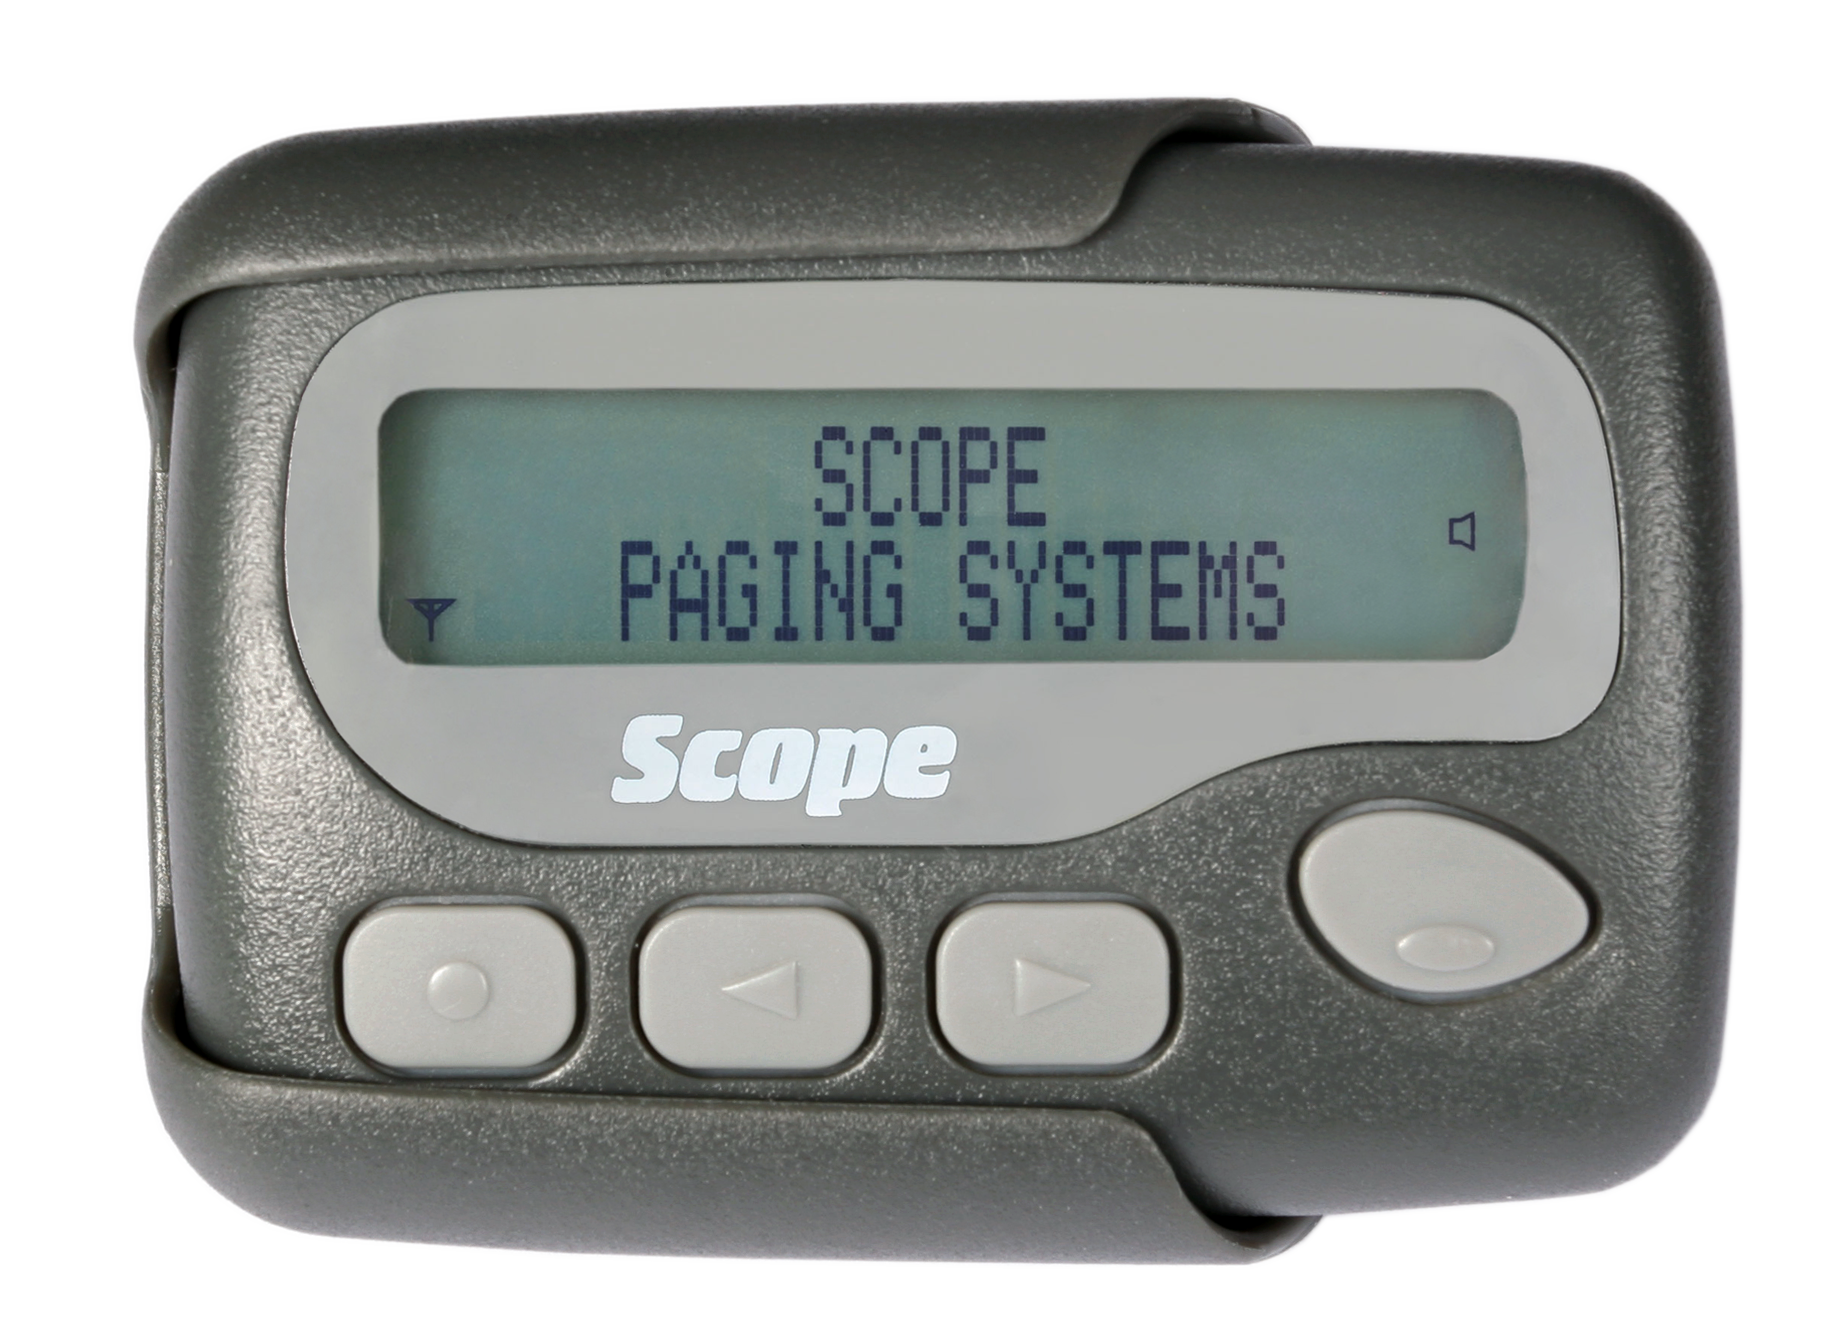 GEO Scribe pager